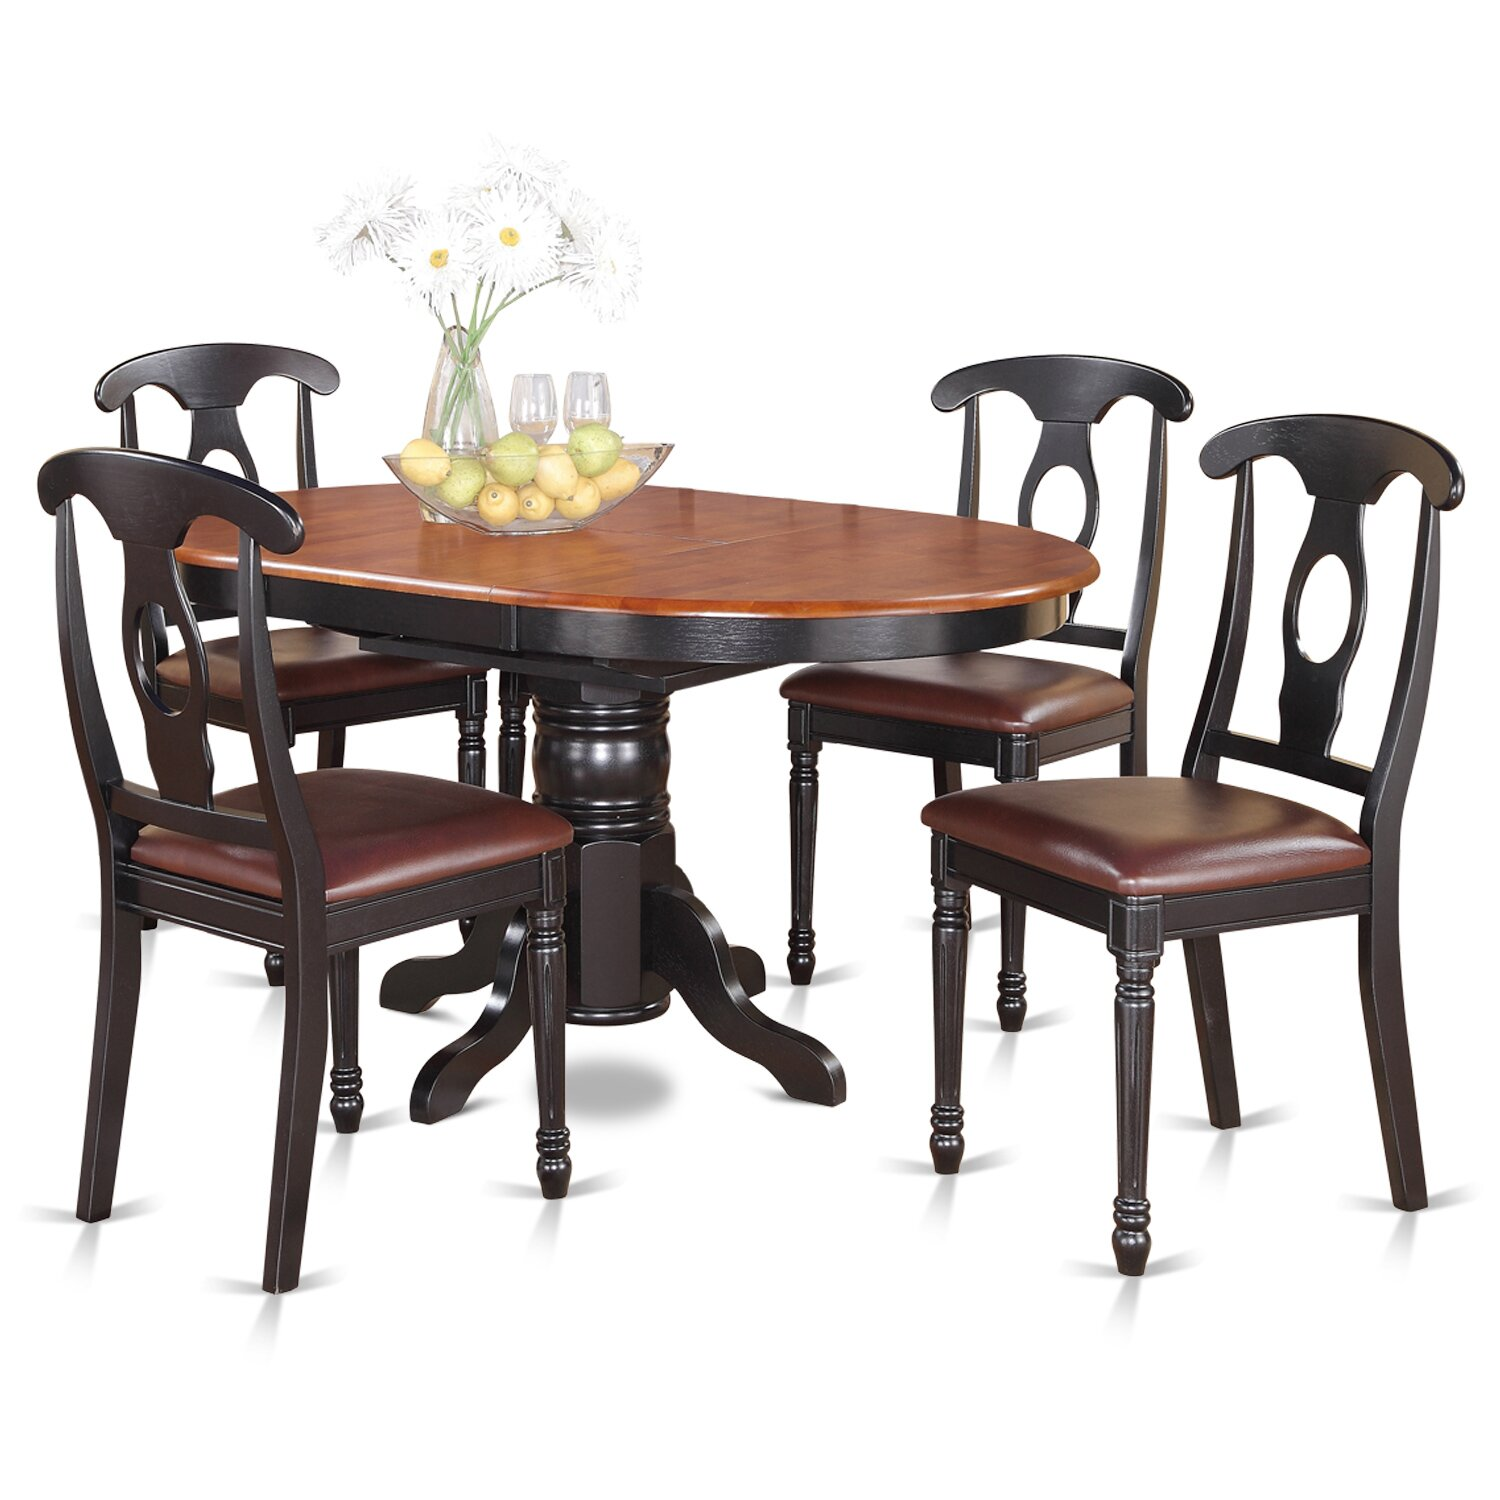 August grove aimee 5 piece dining set reviews wayfair for 5 piece dining set